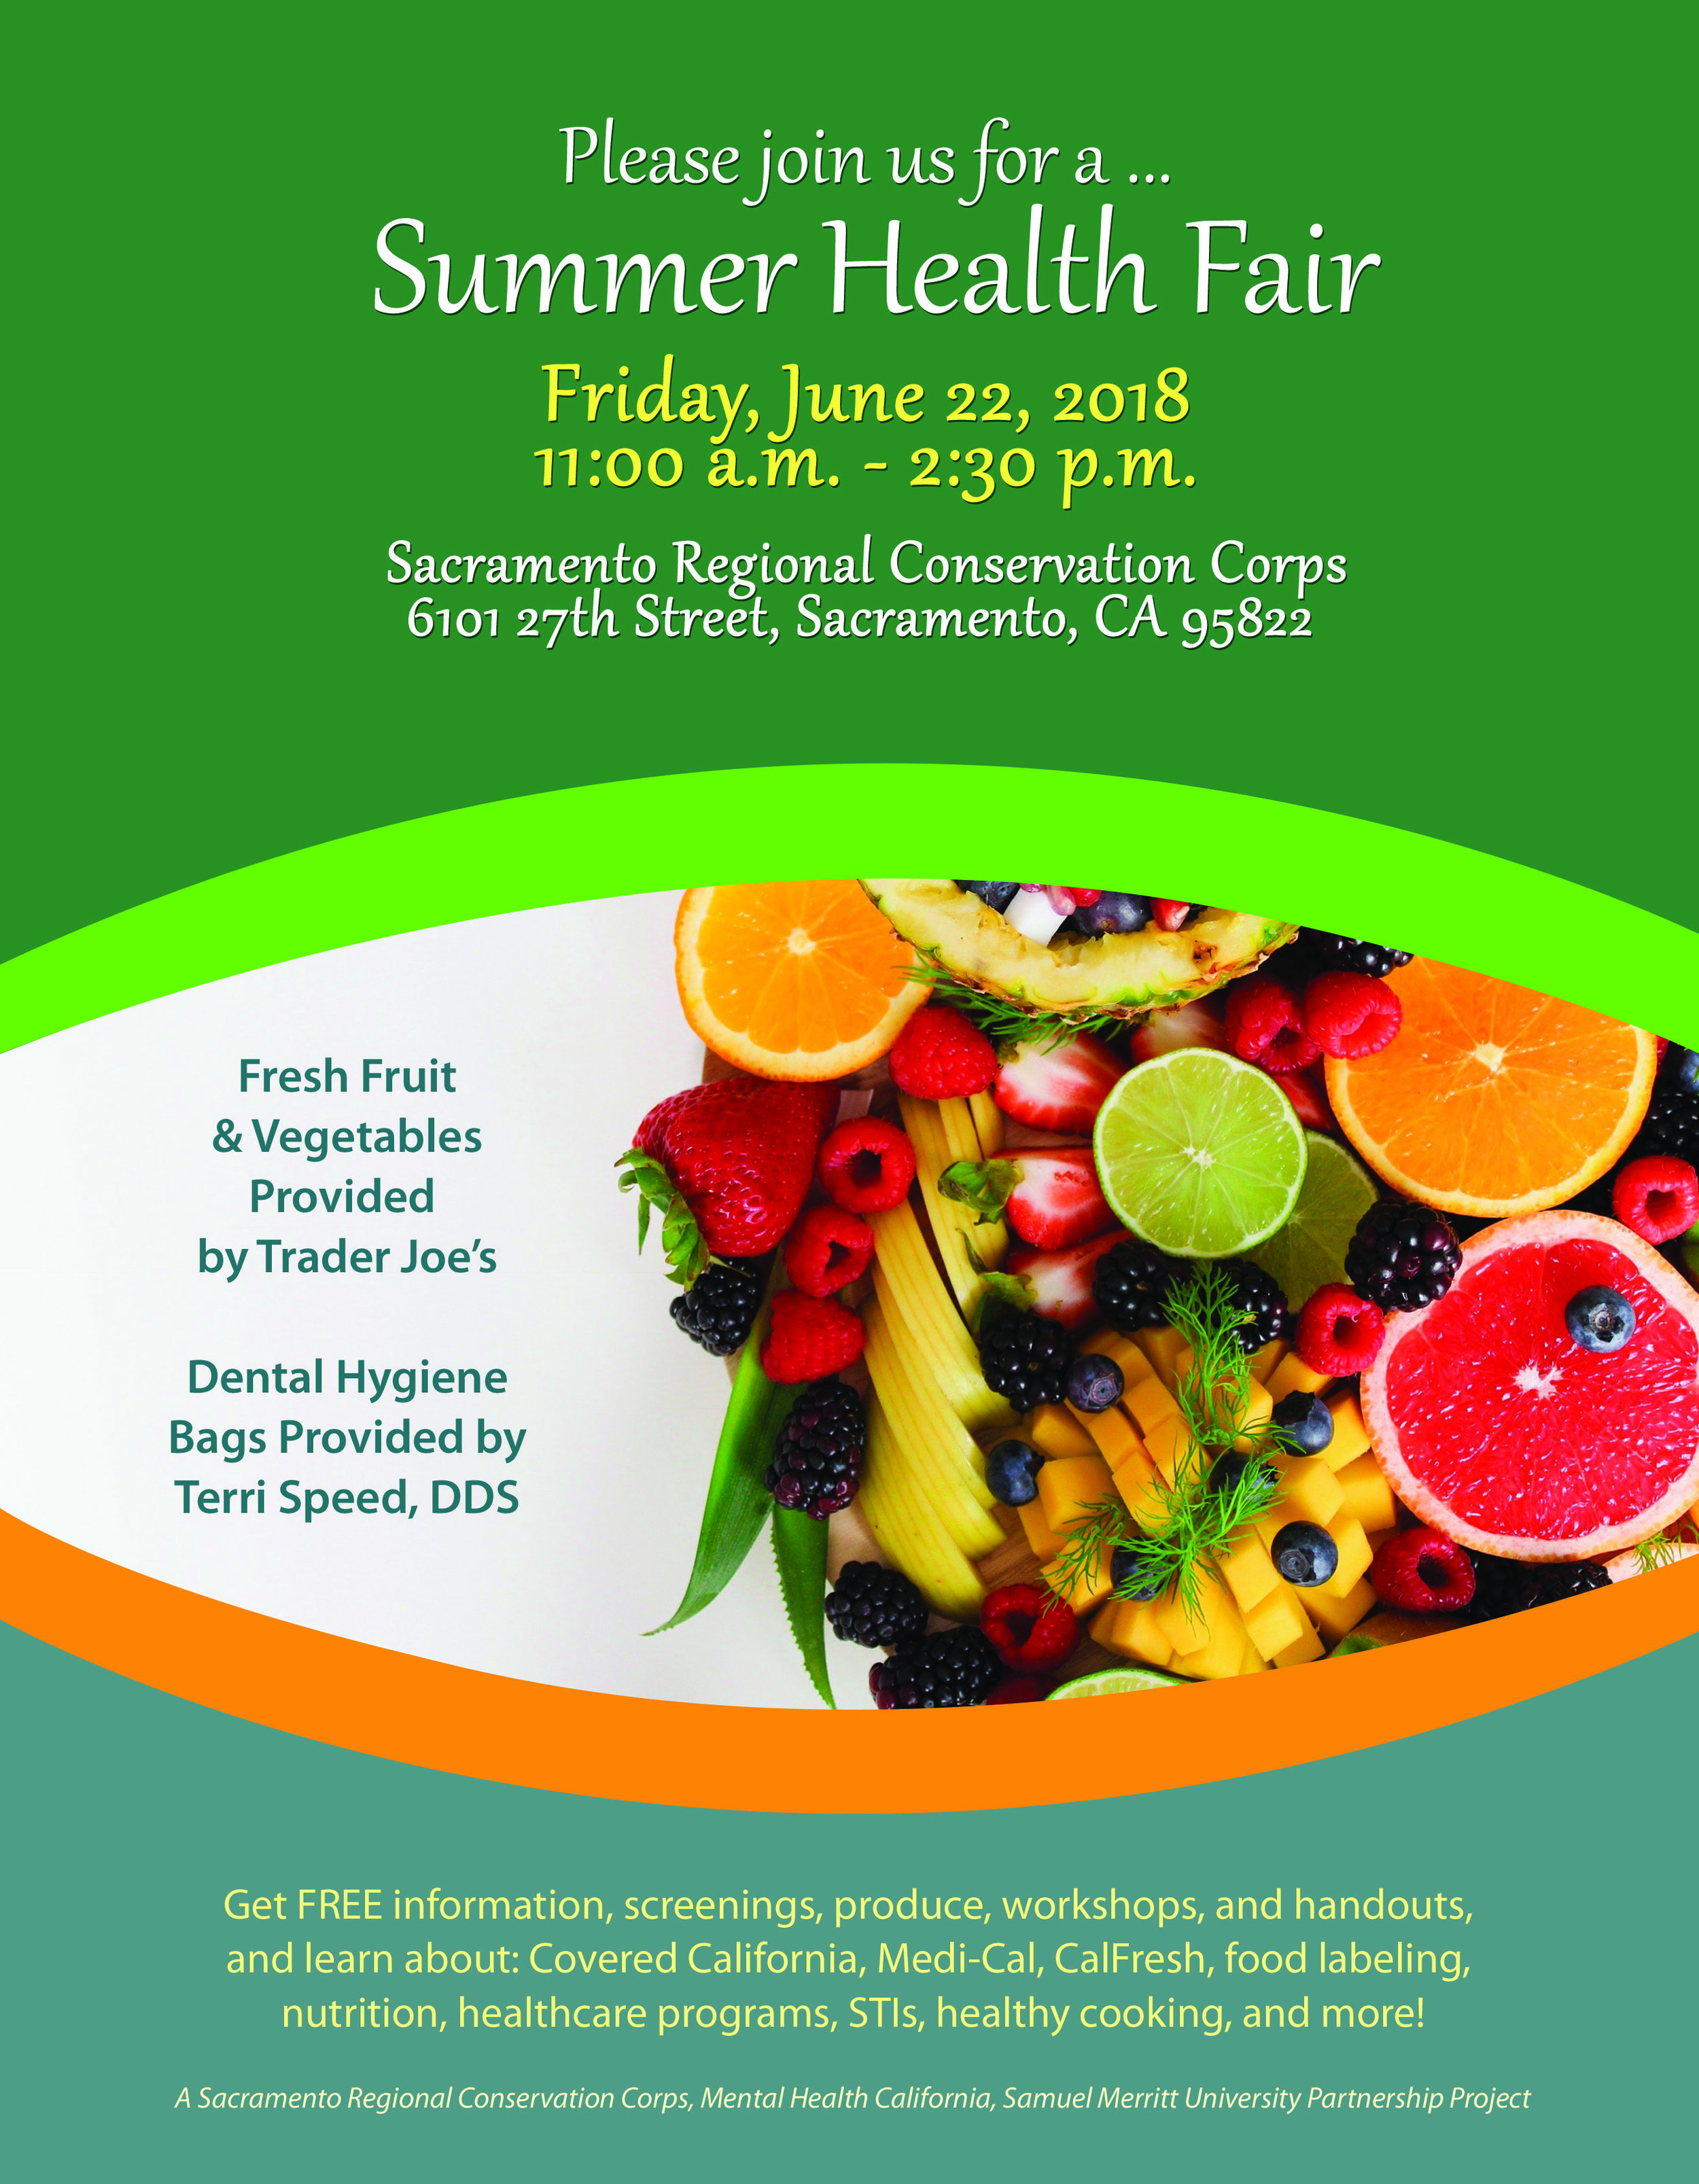 SRCC Summer Health Fair Flyer.jpg